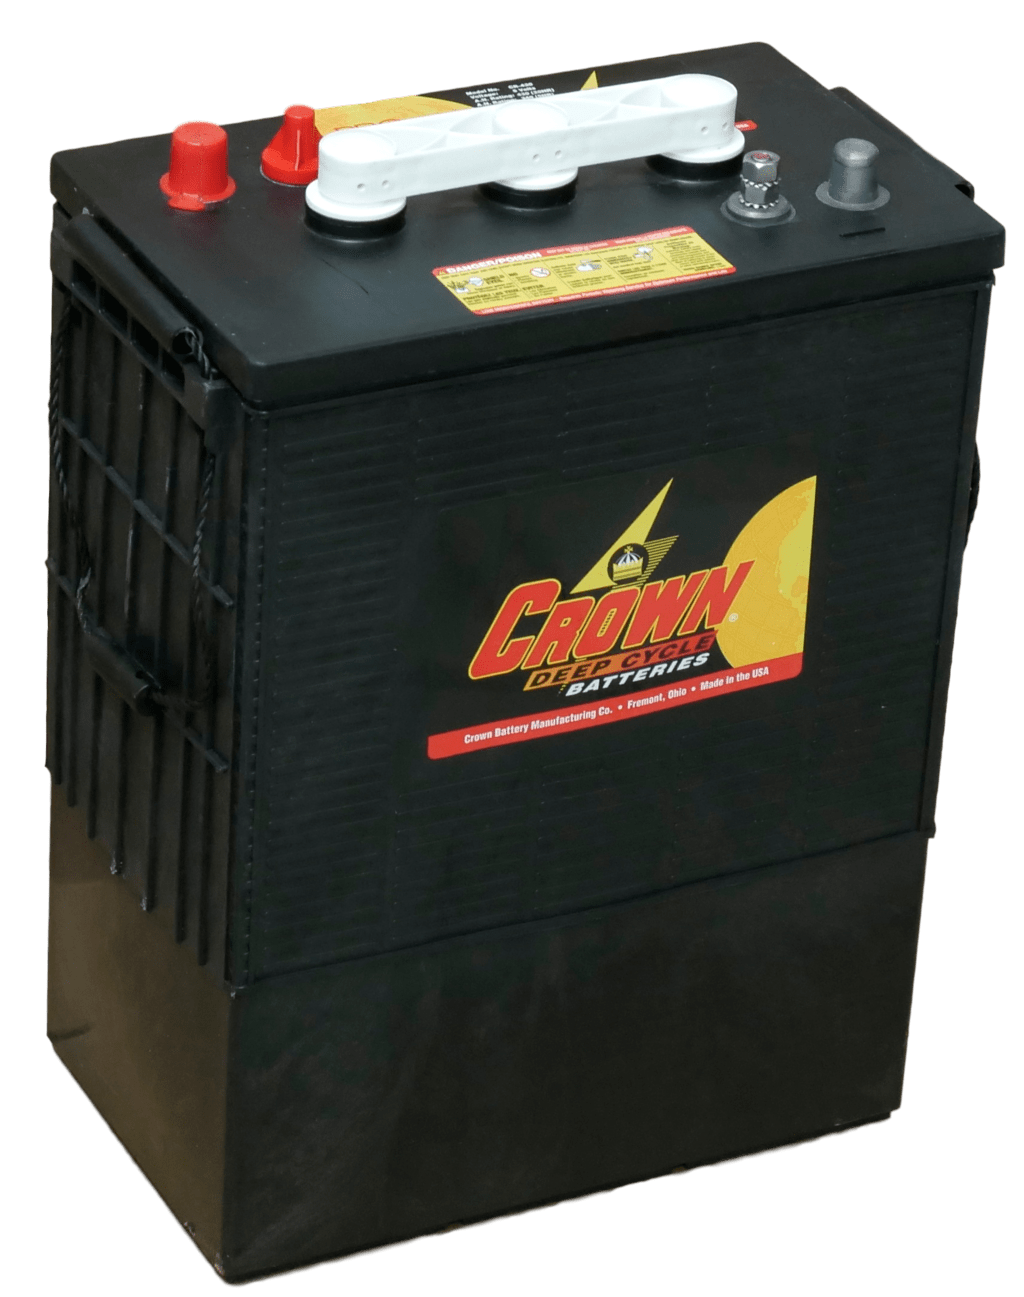 Crown 8L16 Deep Cycle 6 Volt 430AH Battery